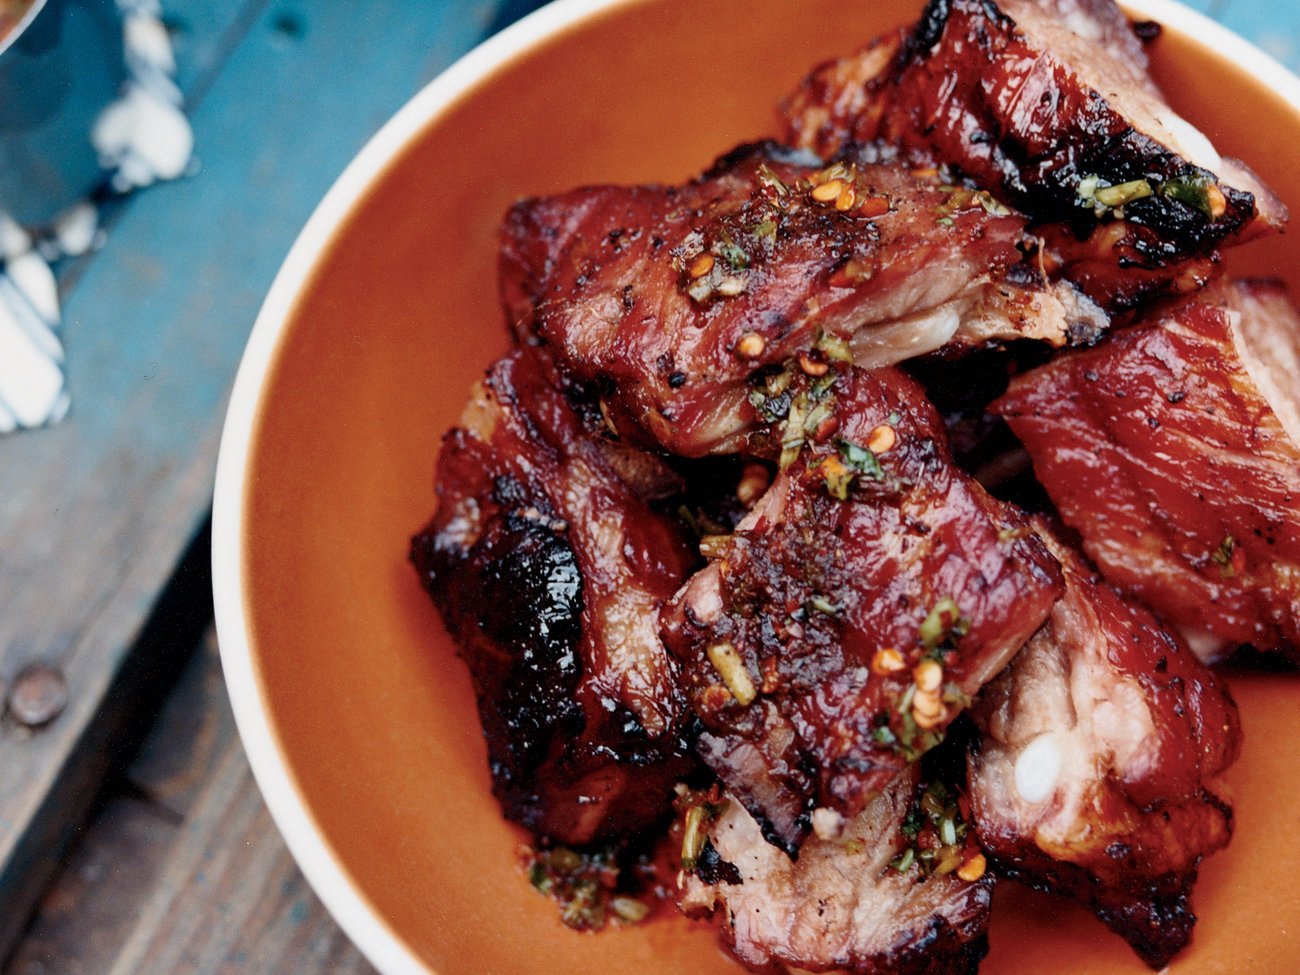 Honey-Glazed Baby Back Ribs with Whiskey Marinade